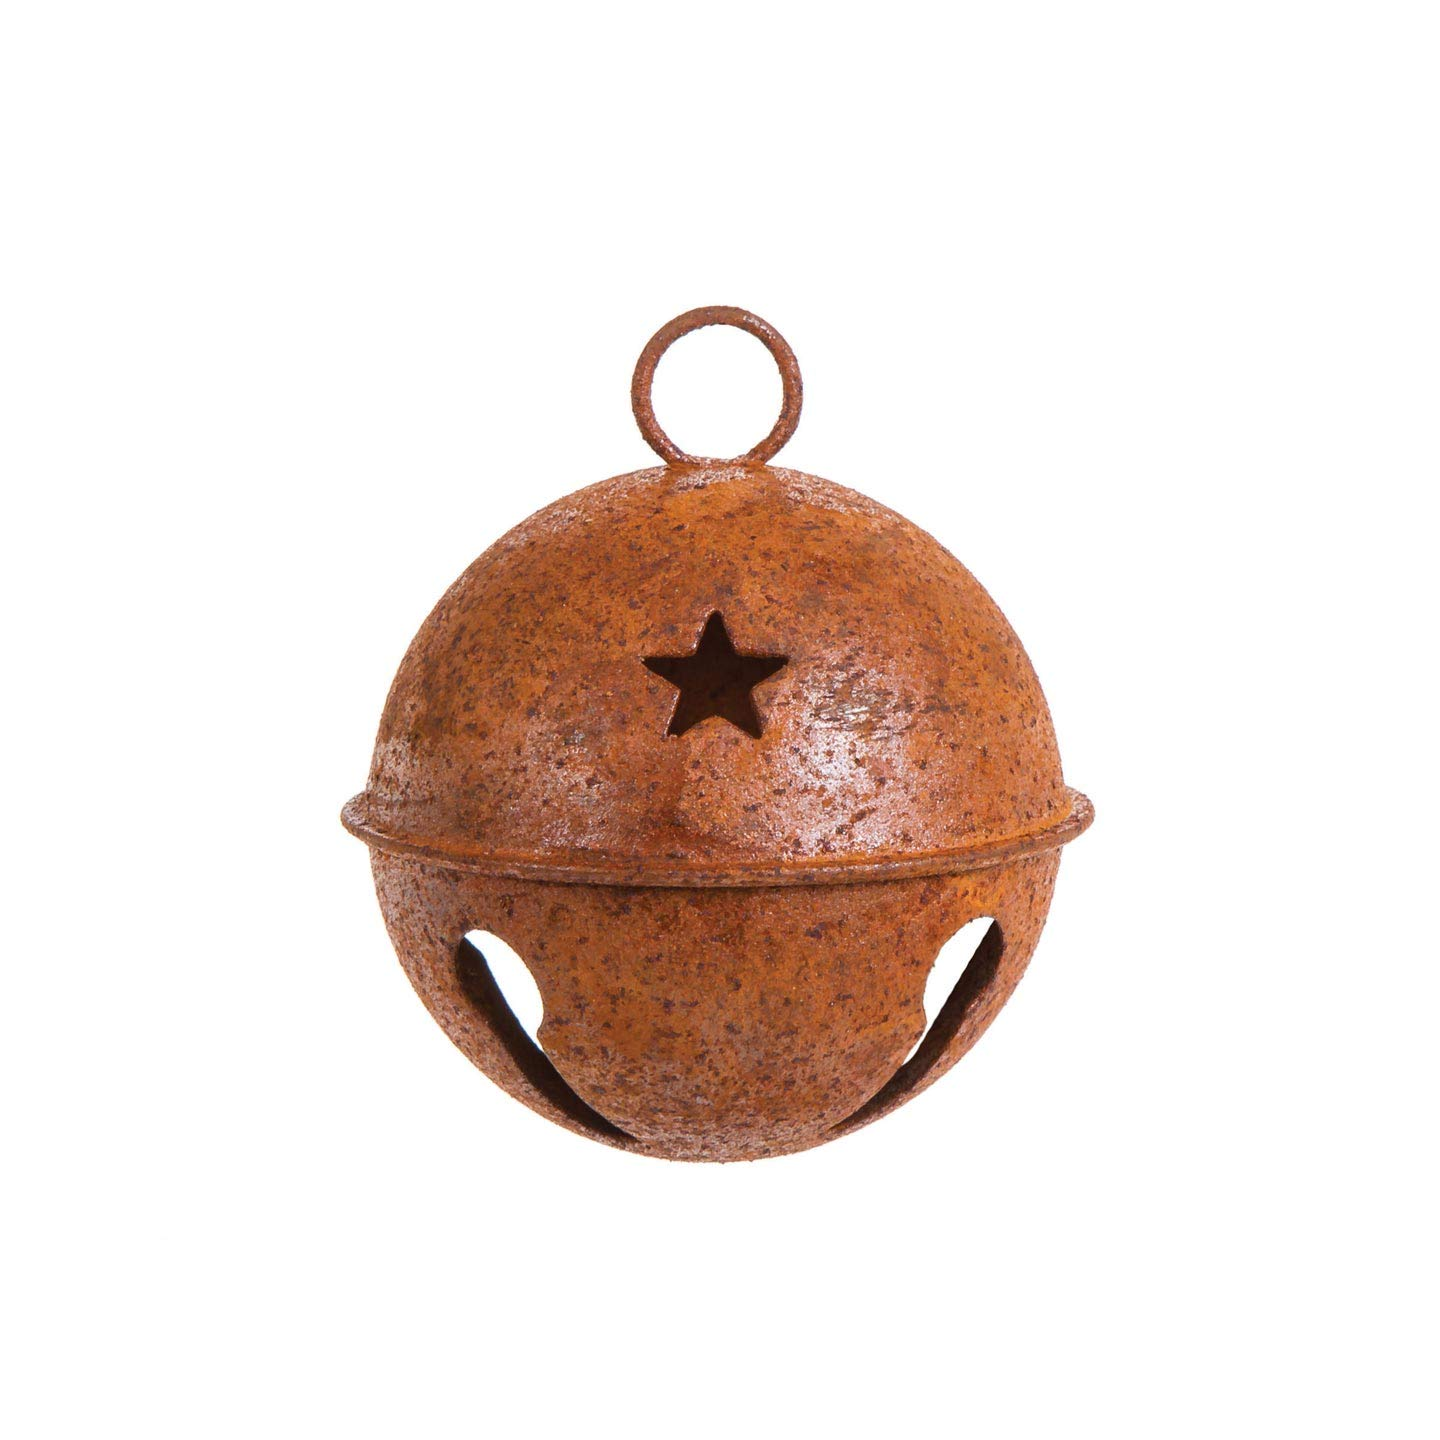 Darice Bulk Buy DIY Rusty Bell with Star Cutouts 65mm (12-Pack) 1091-20 by Darice